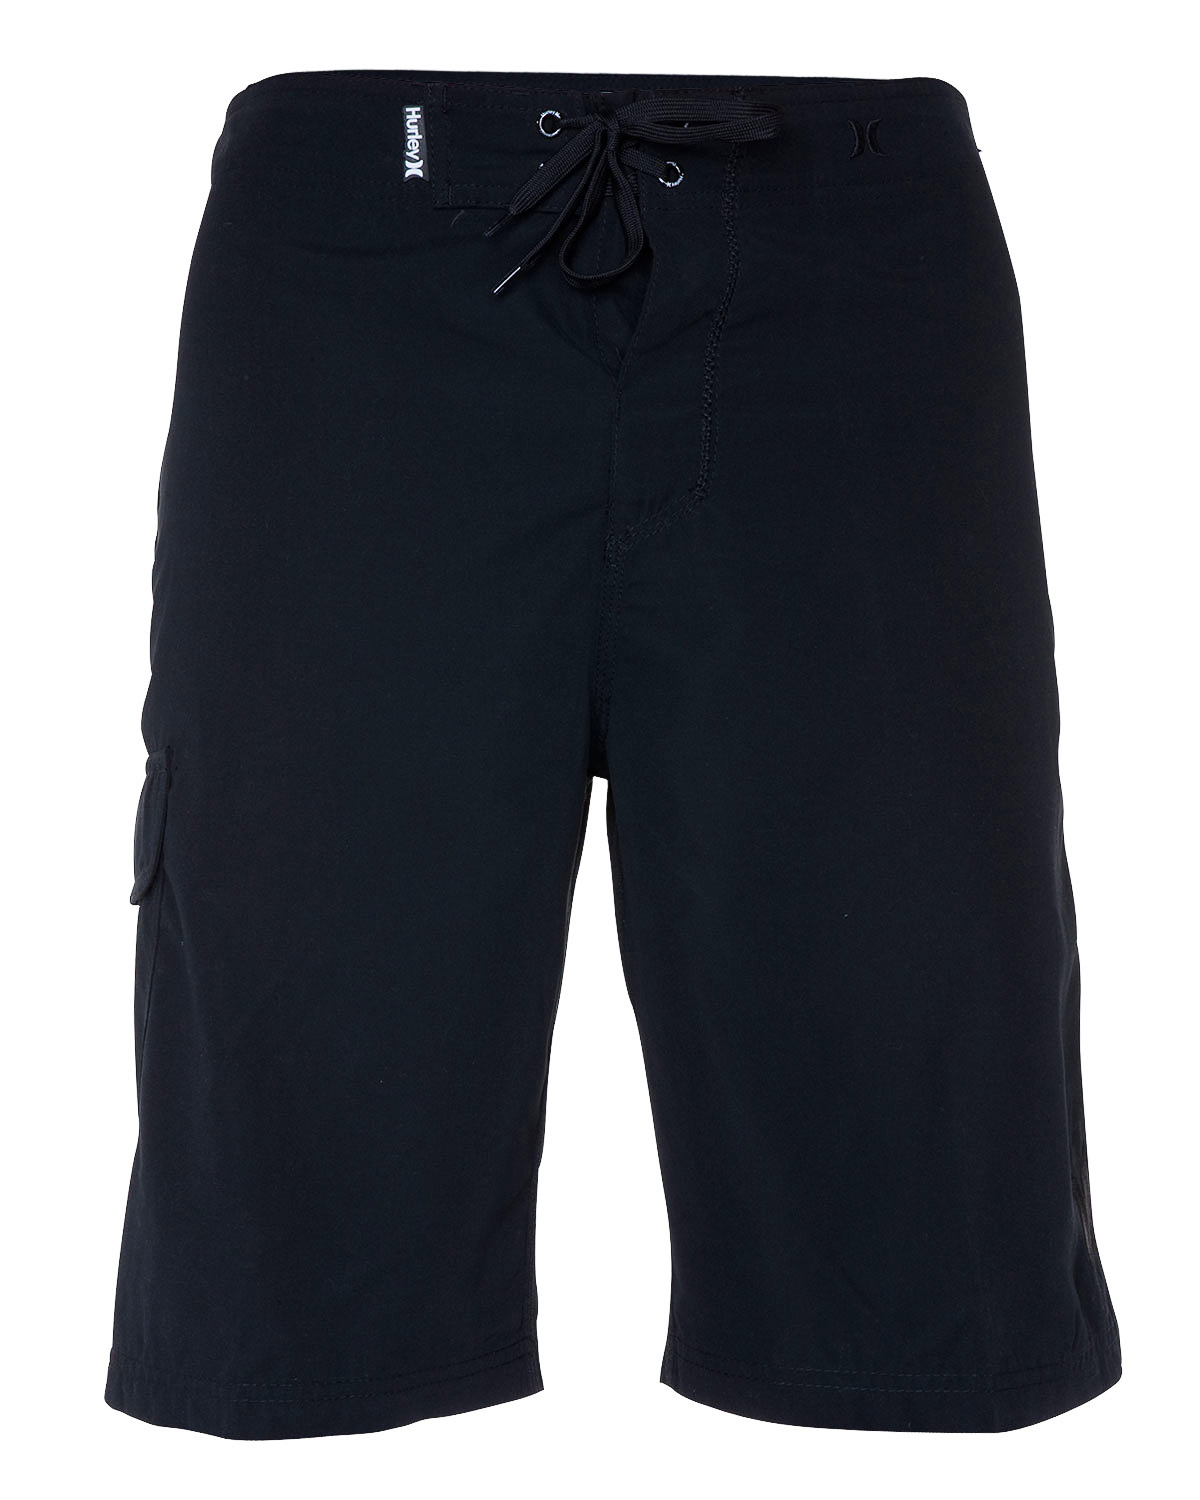 "Surf Key Features of the Hurley One & Only Boardshorts: 22"" outseam Recycled supersuede Patented EZ fly closure Embroidered logo Patch pocket with icon drainhole - $29.95"